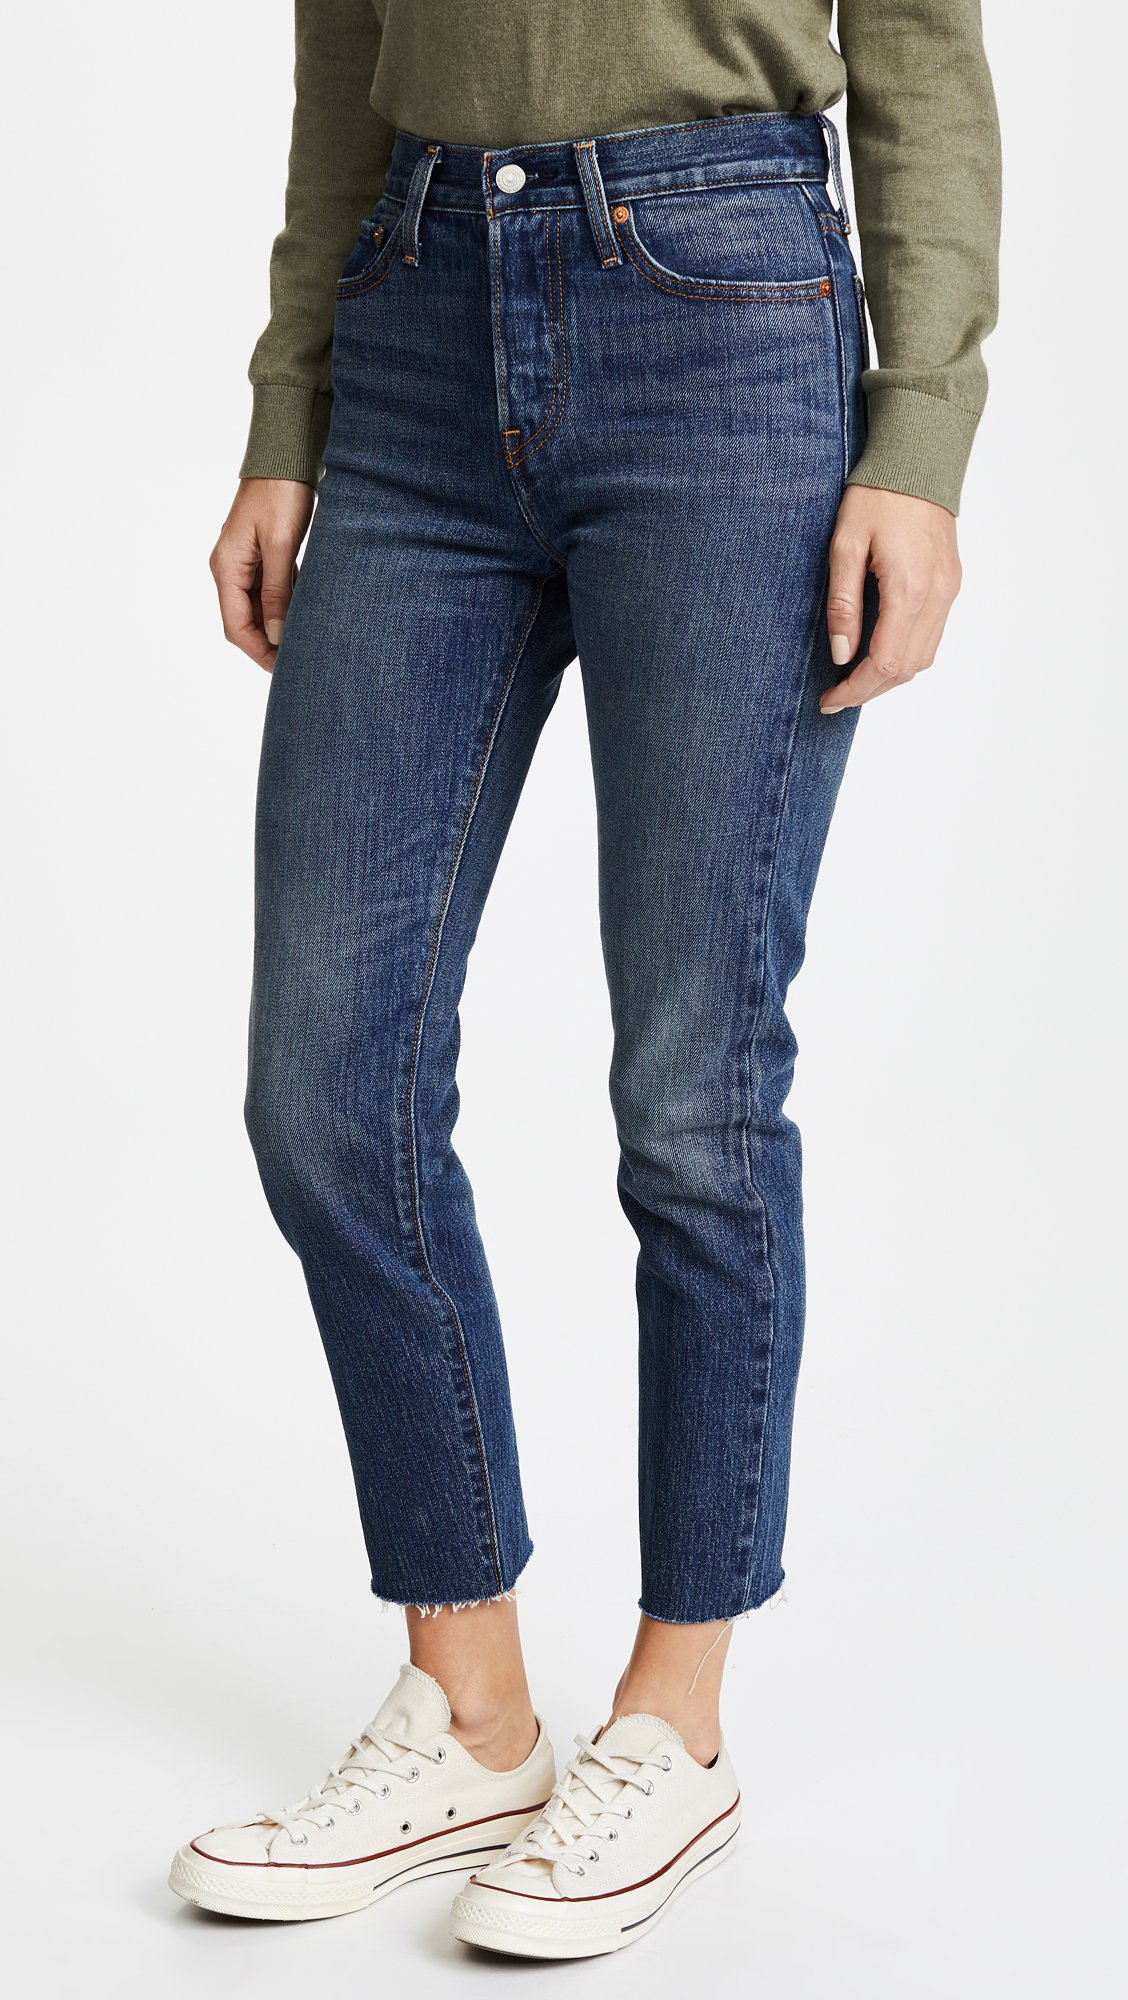 Levi S Women S Wedgie Icon Jeans Denim Fit